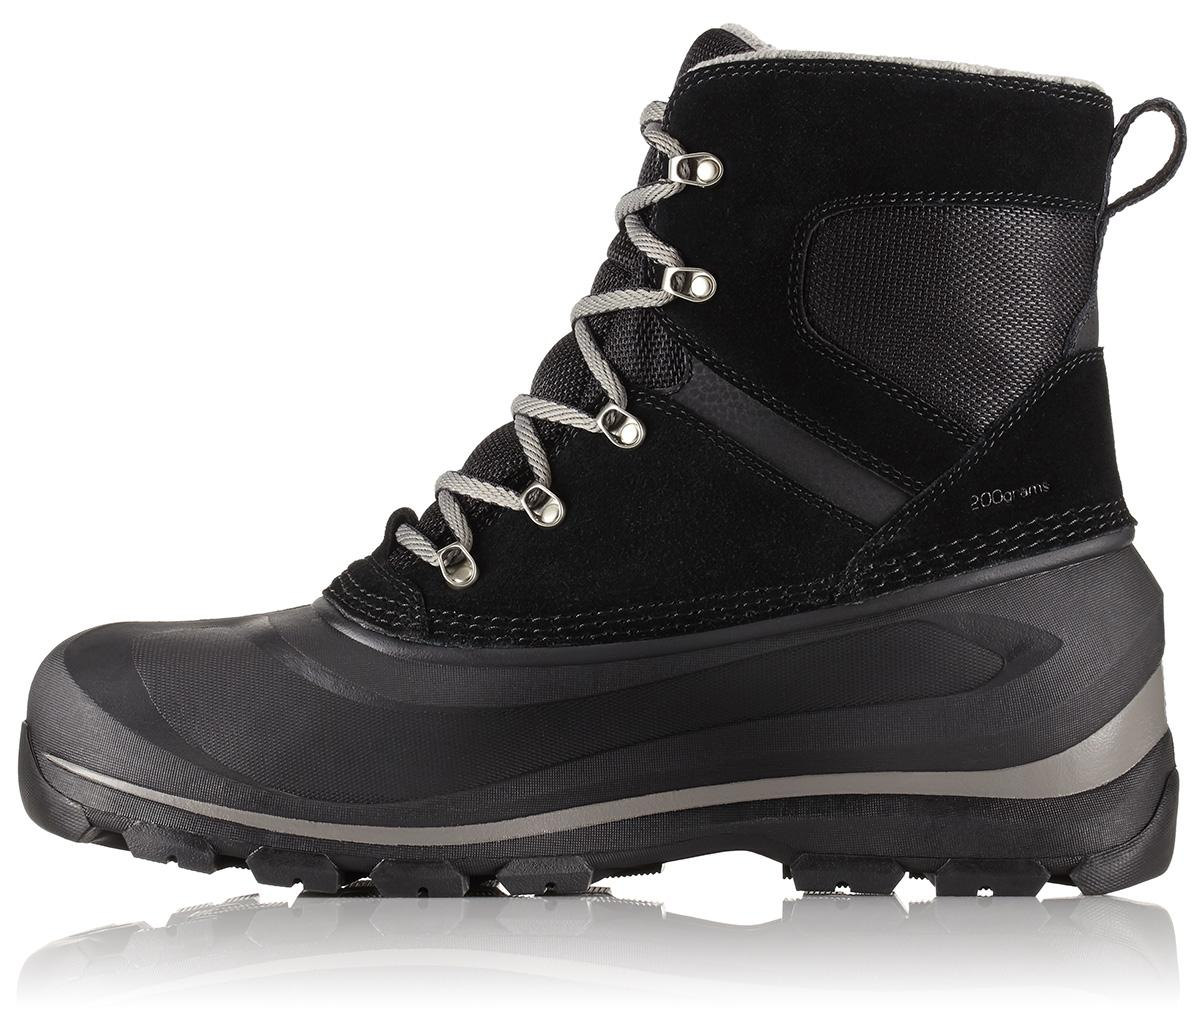 Sorel Buxton in Black and Quarry